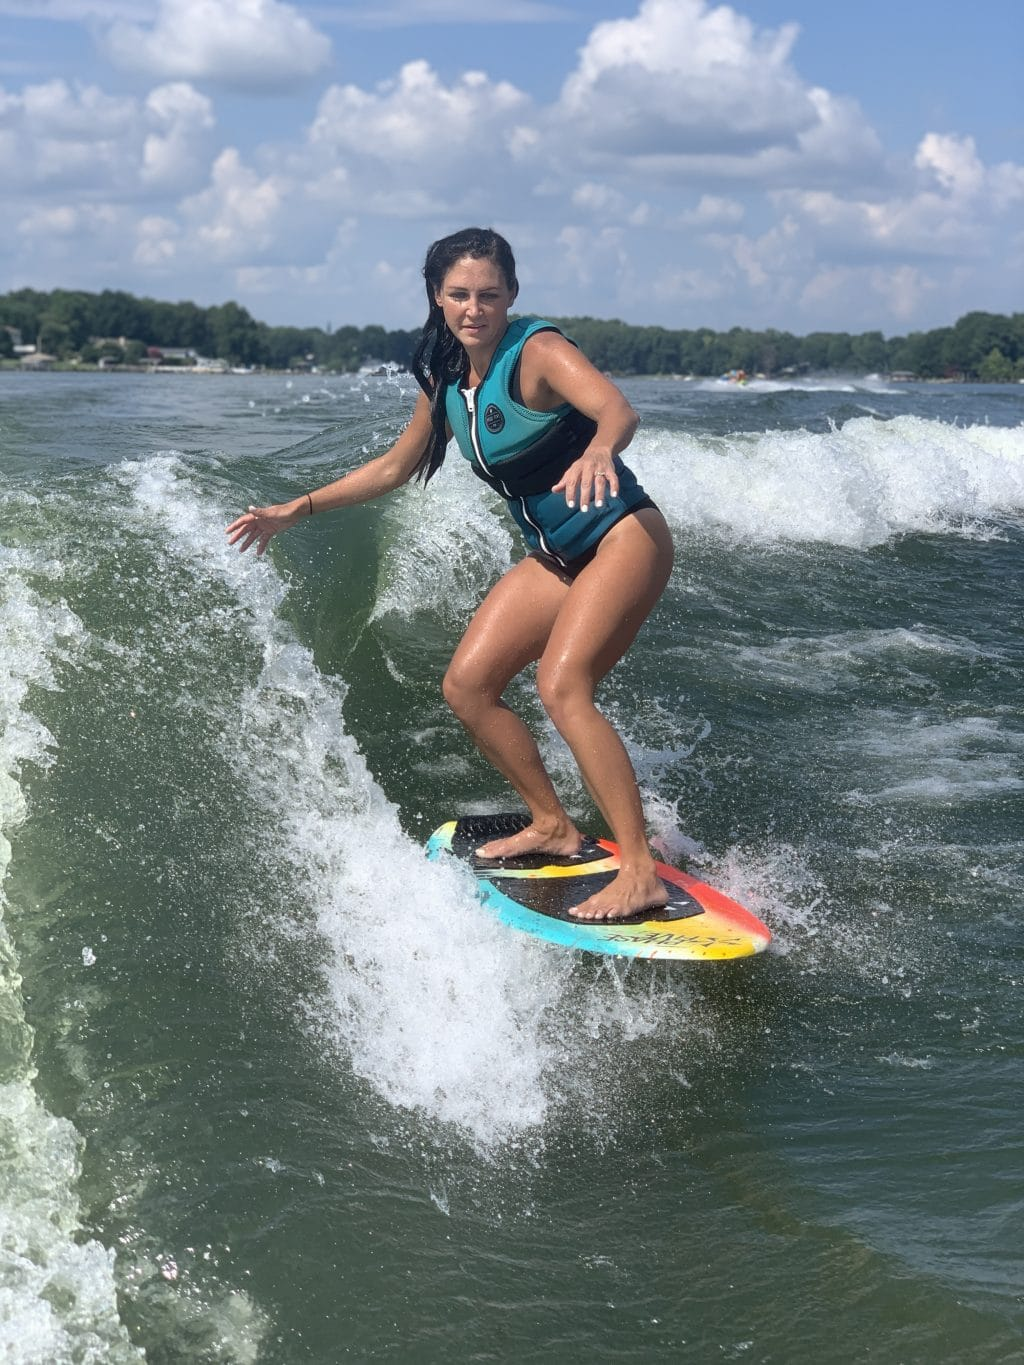 Girls who surf, Lake Norman, Stilettos and Diapers, Boymom, Molly Wey